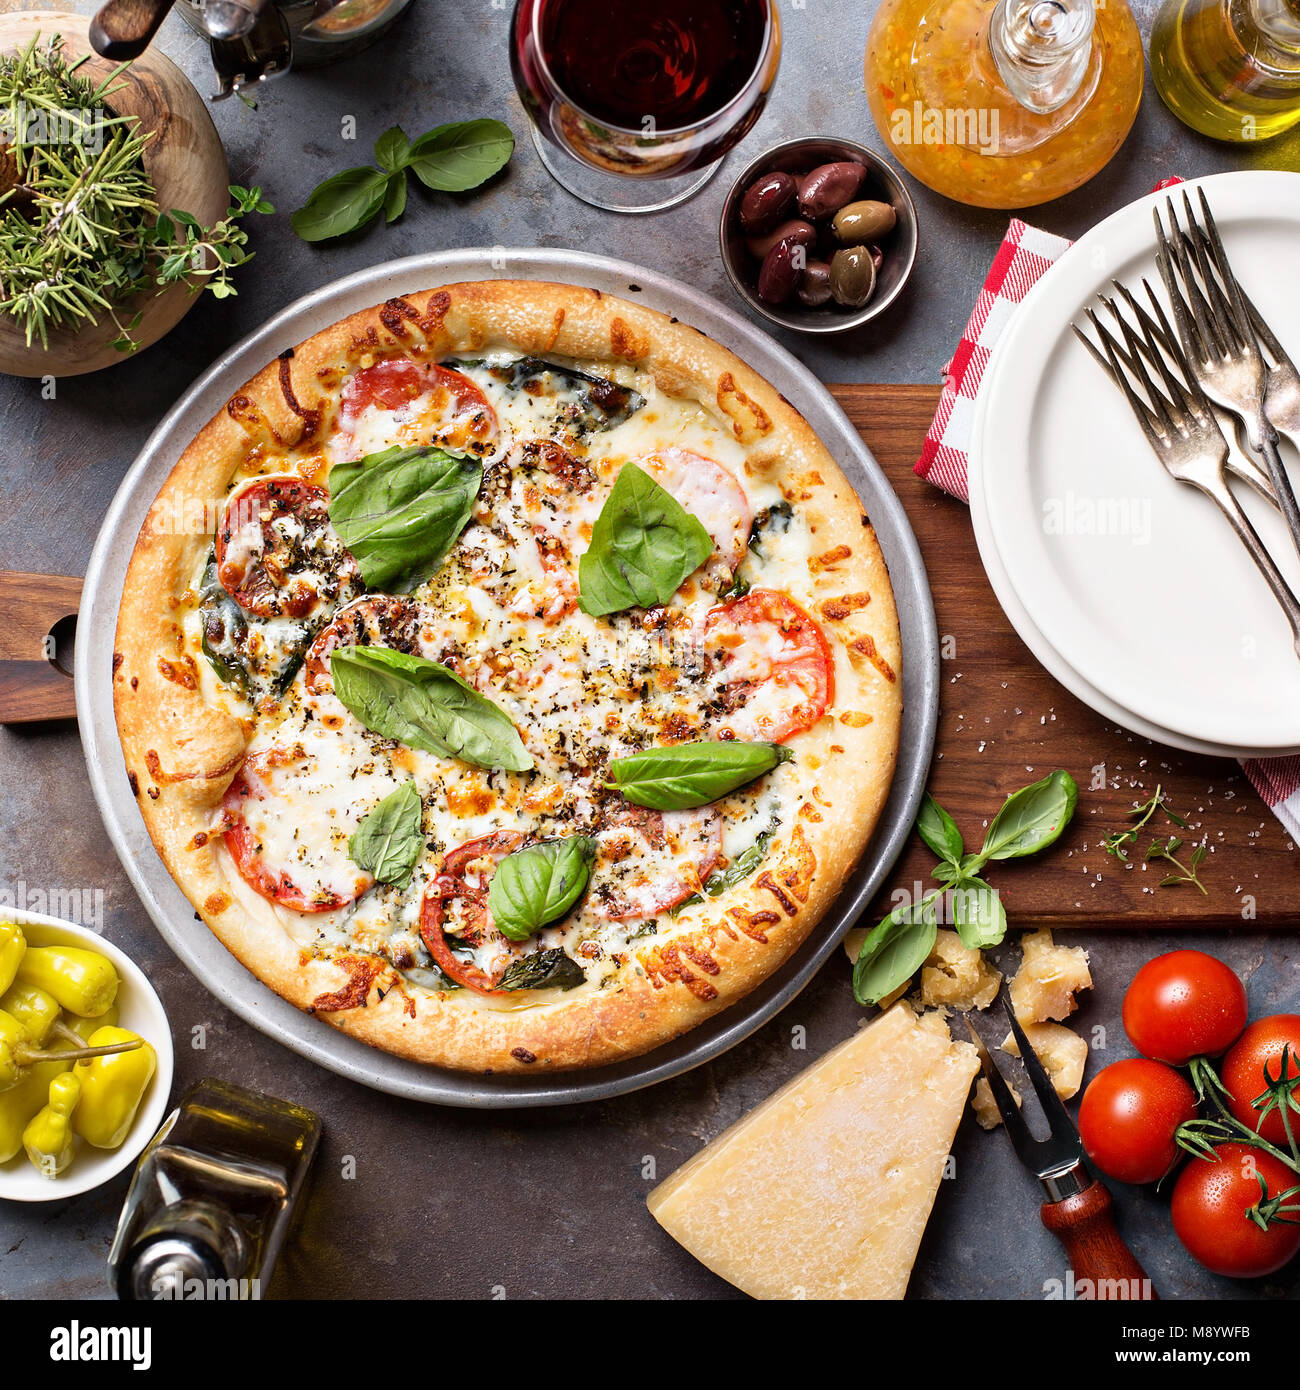 Margherita pizza with basil - Stock Image